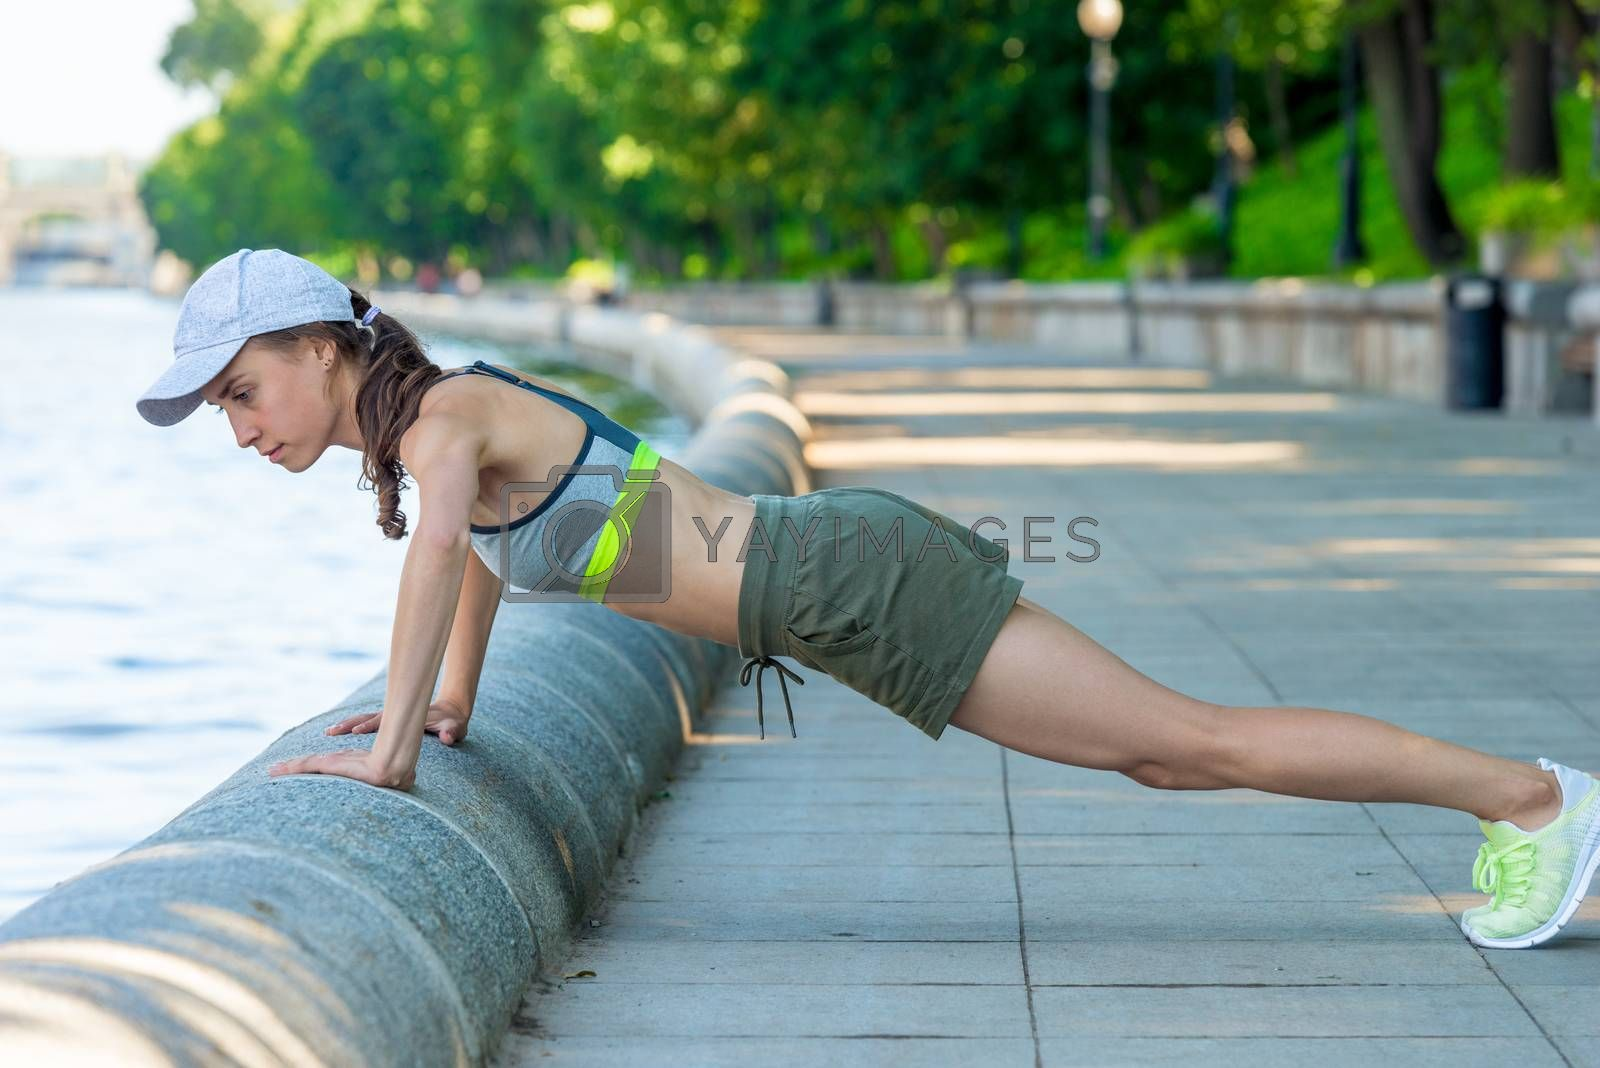 push-ups on the city promenade, active woman with a sports figur by Labunskiy K.